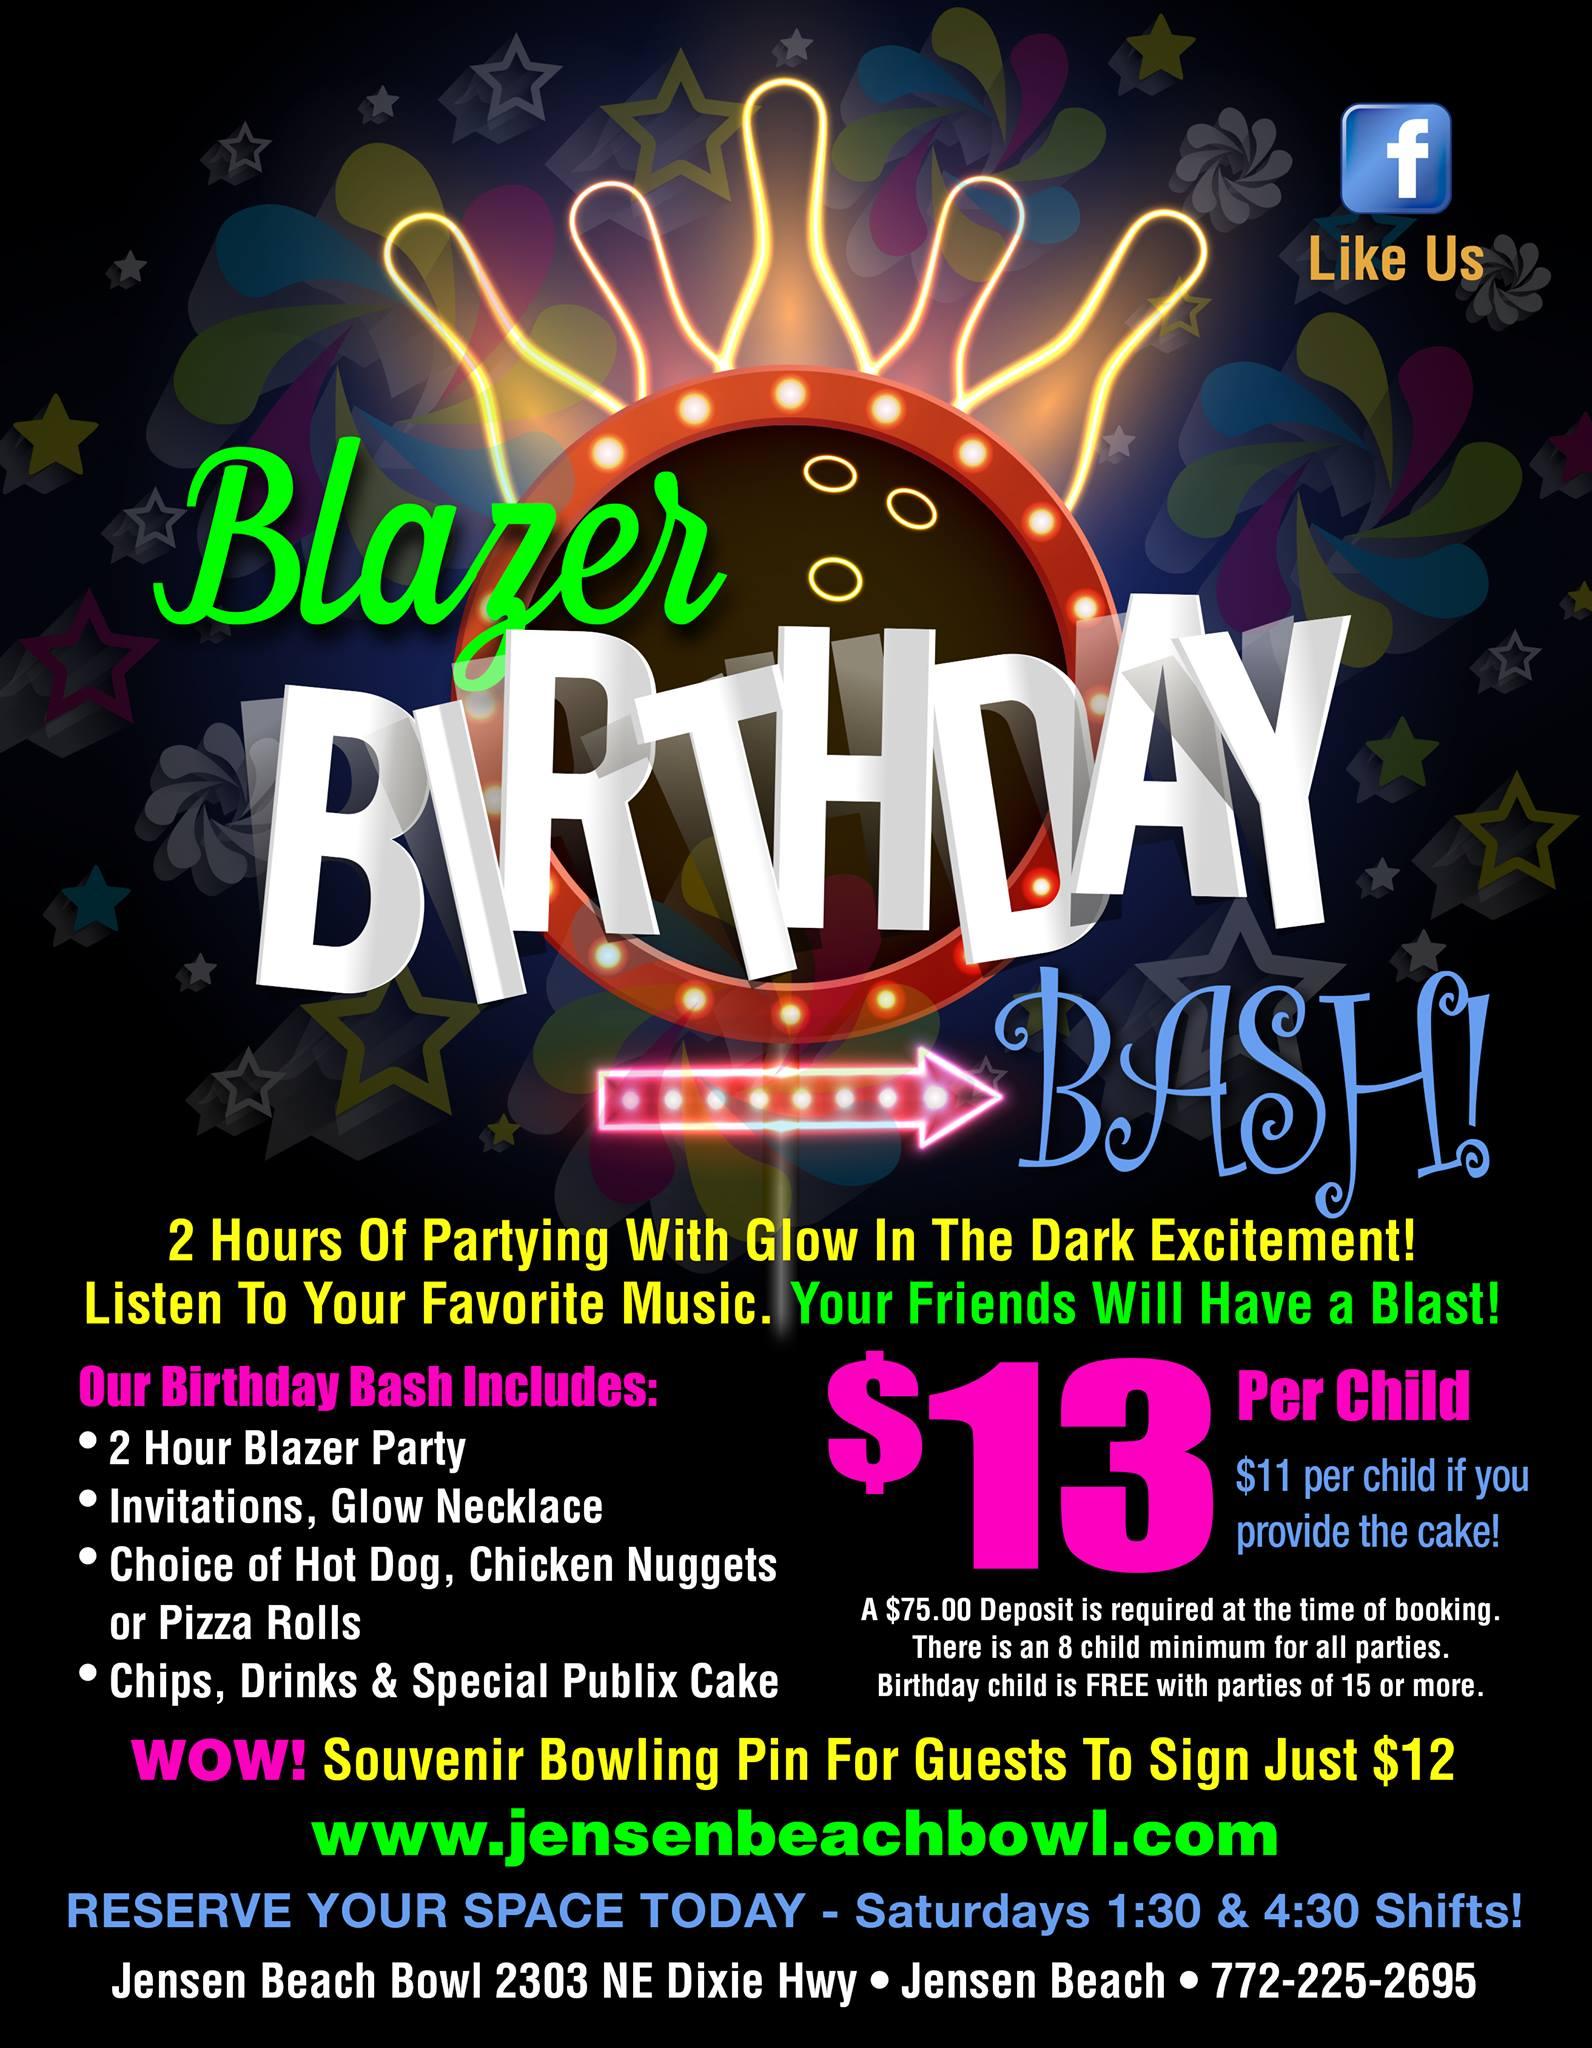 Blazer bday bash flyer